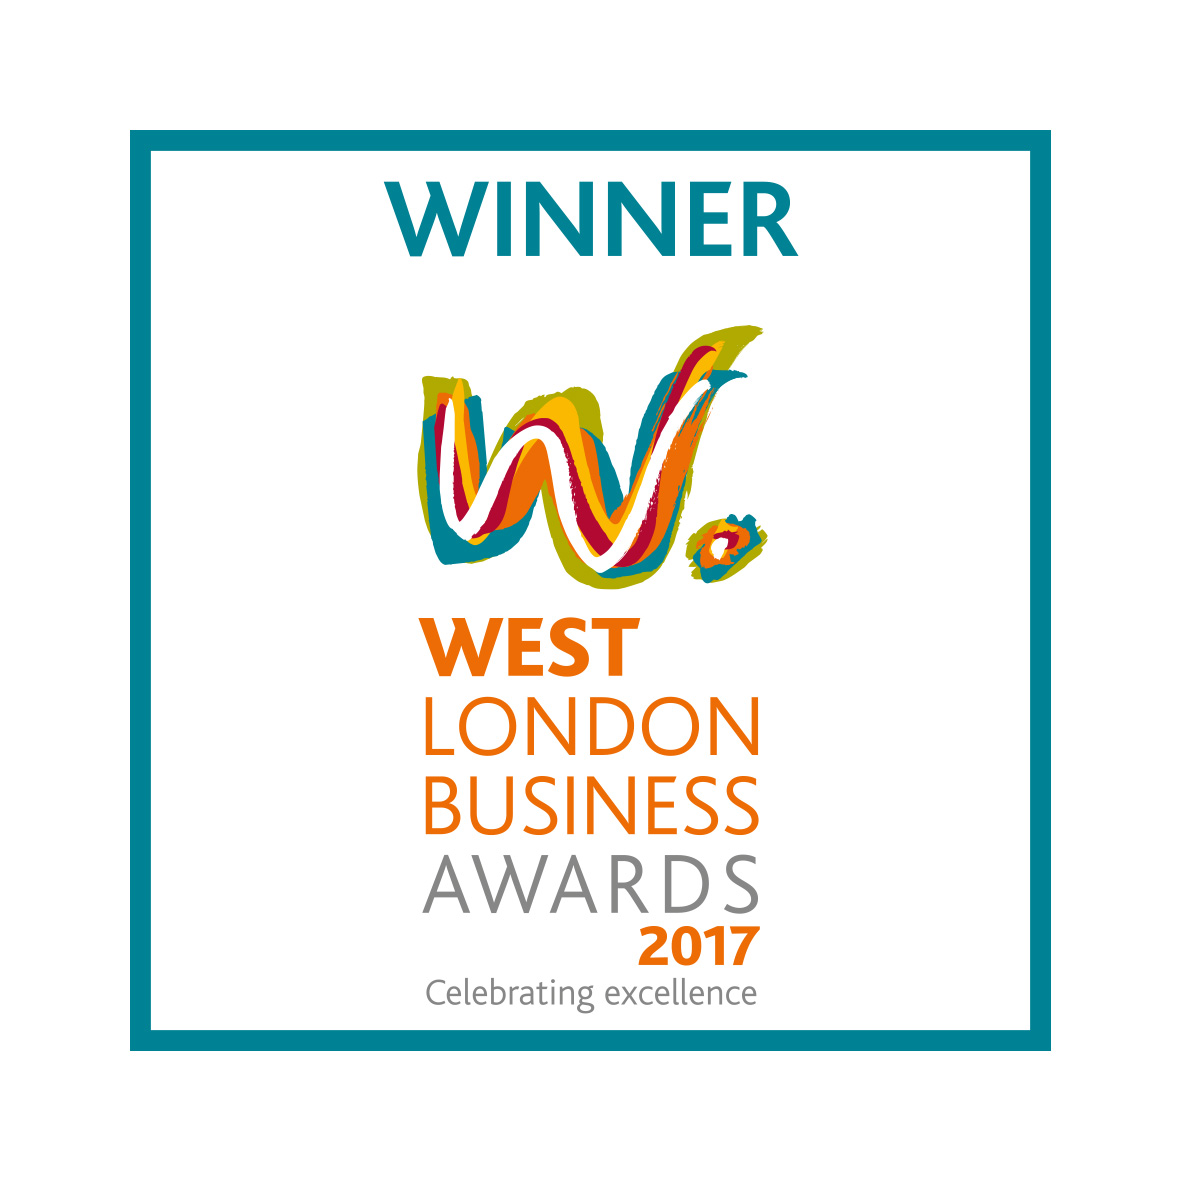 West London Business Awards